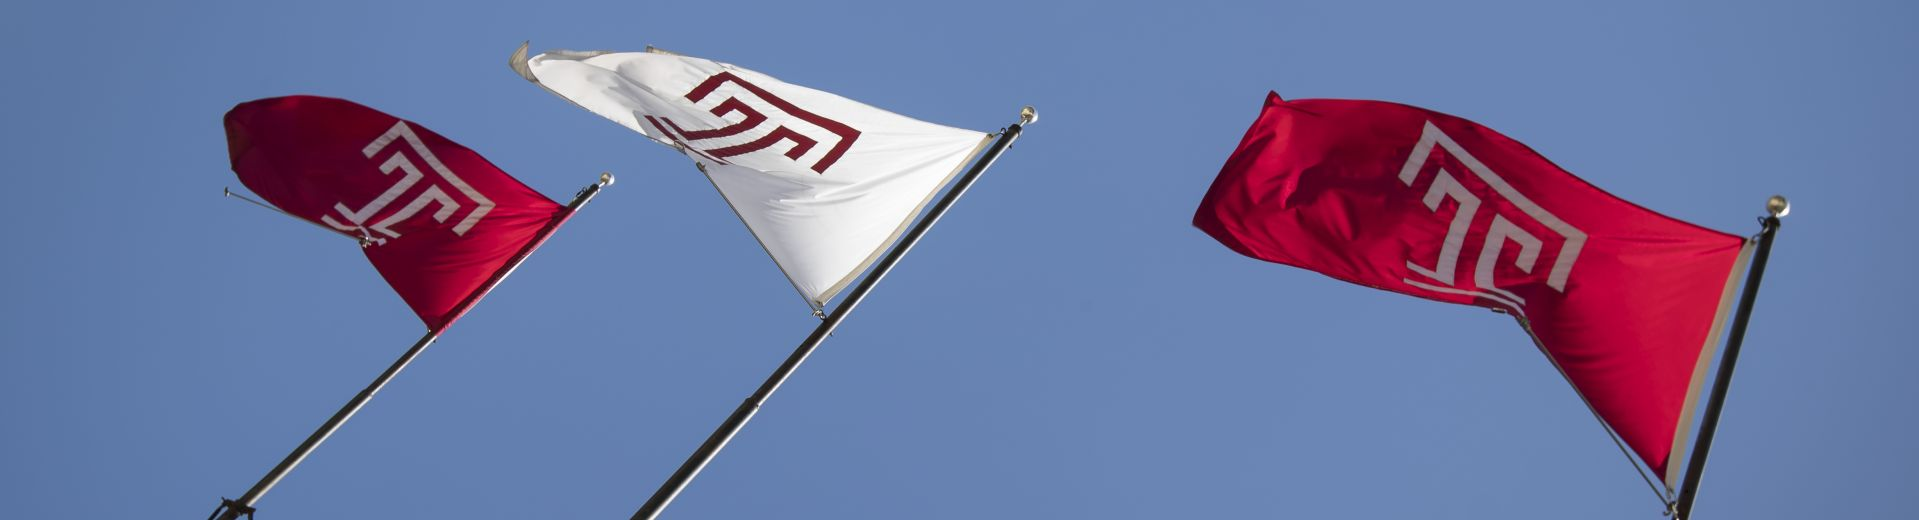 Temple University flags wet against the sky and blowing in the wind